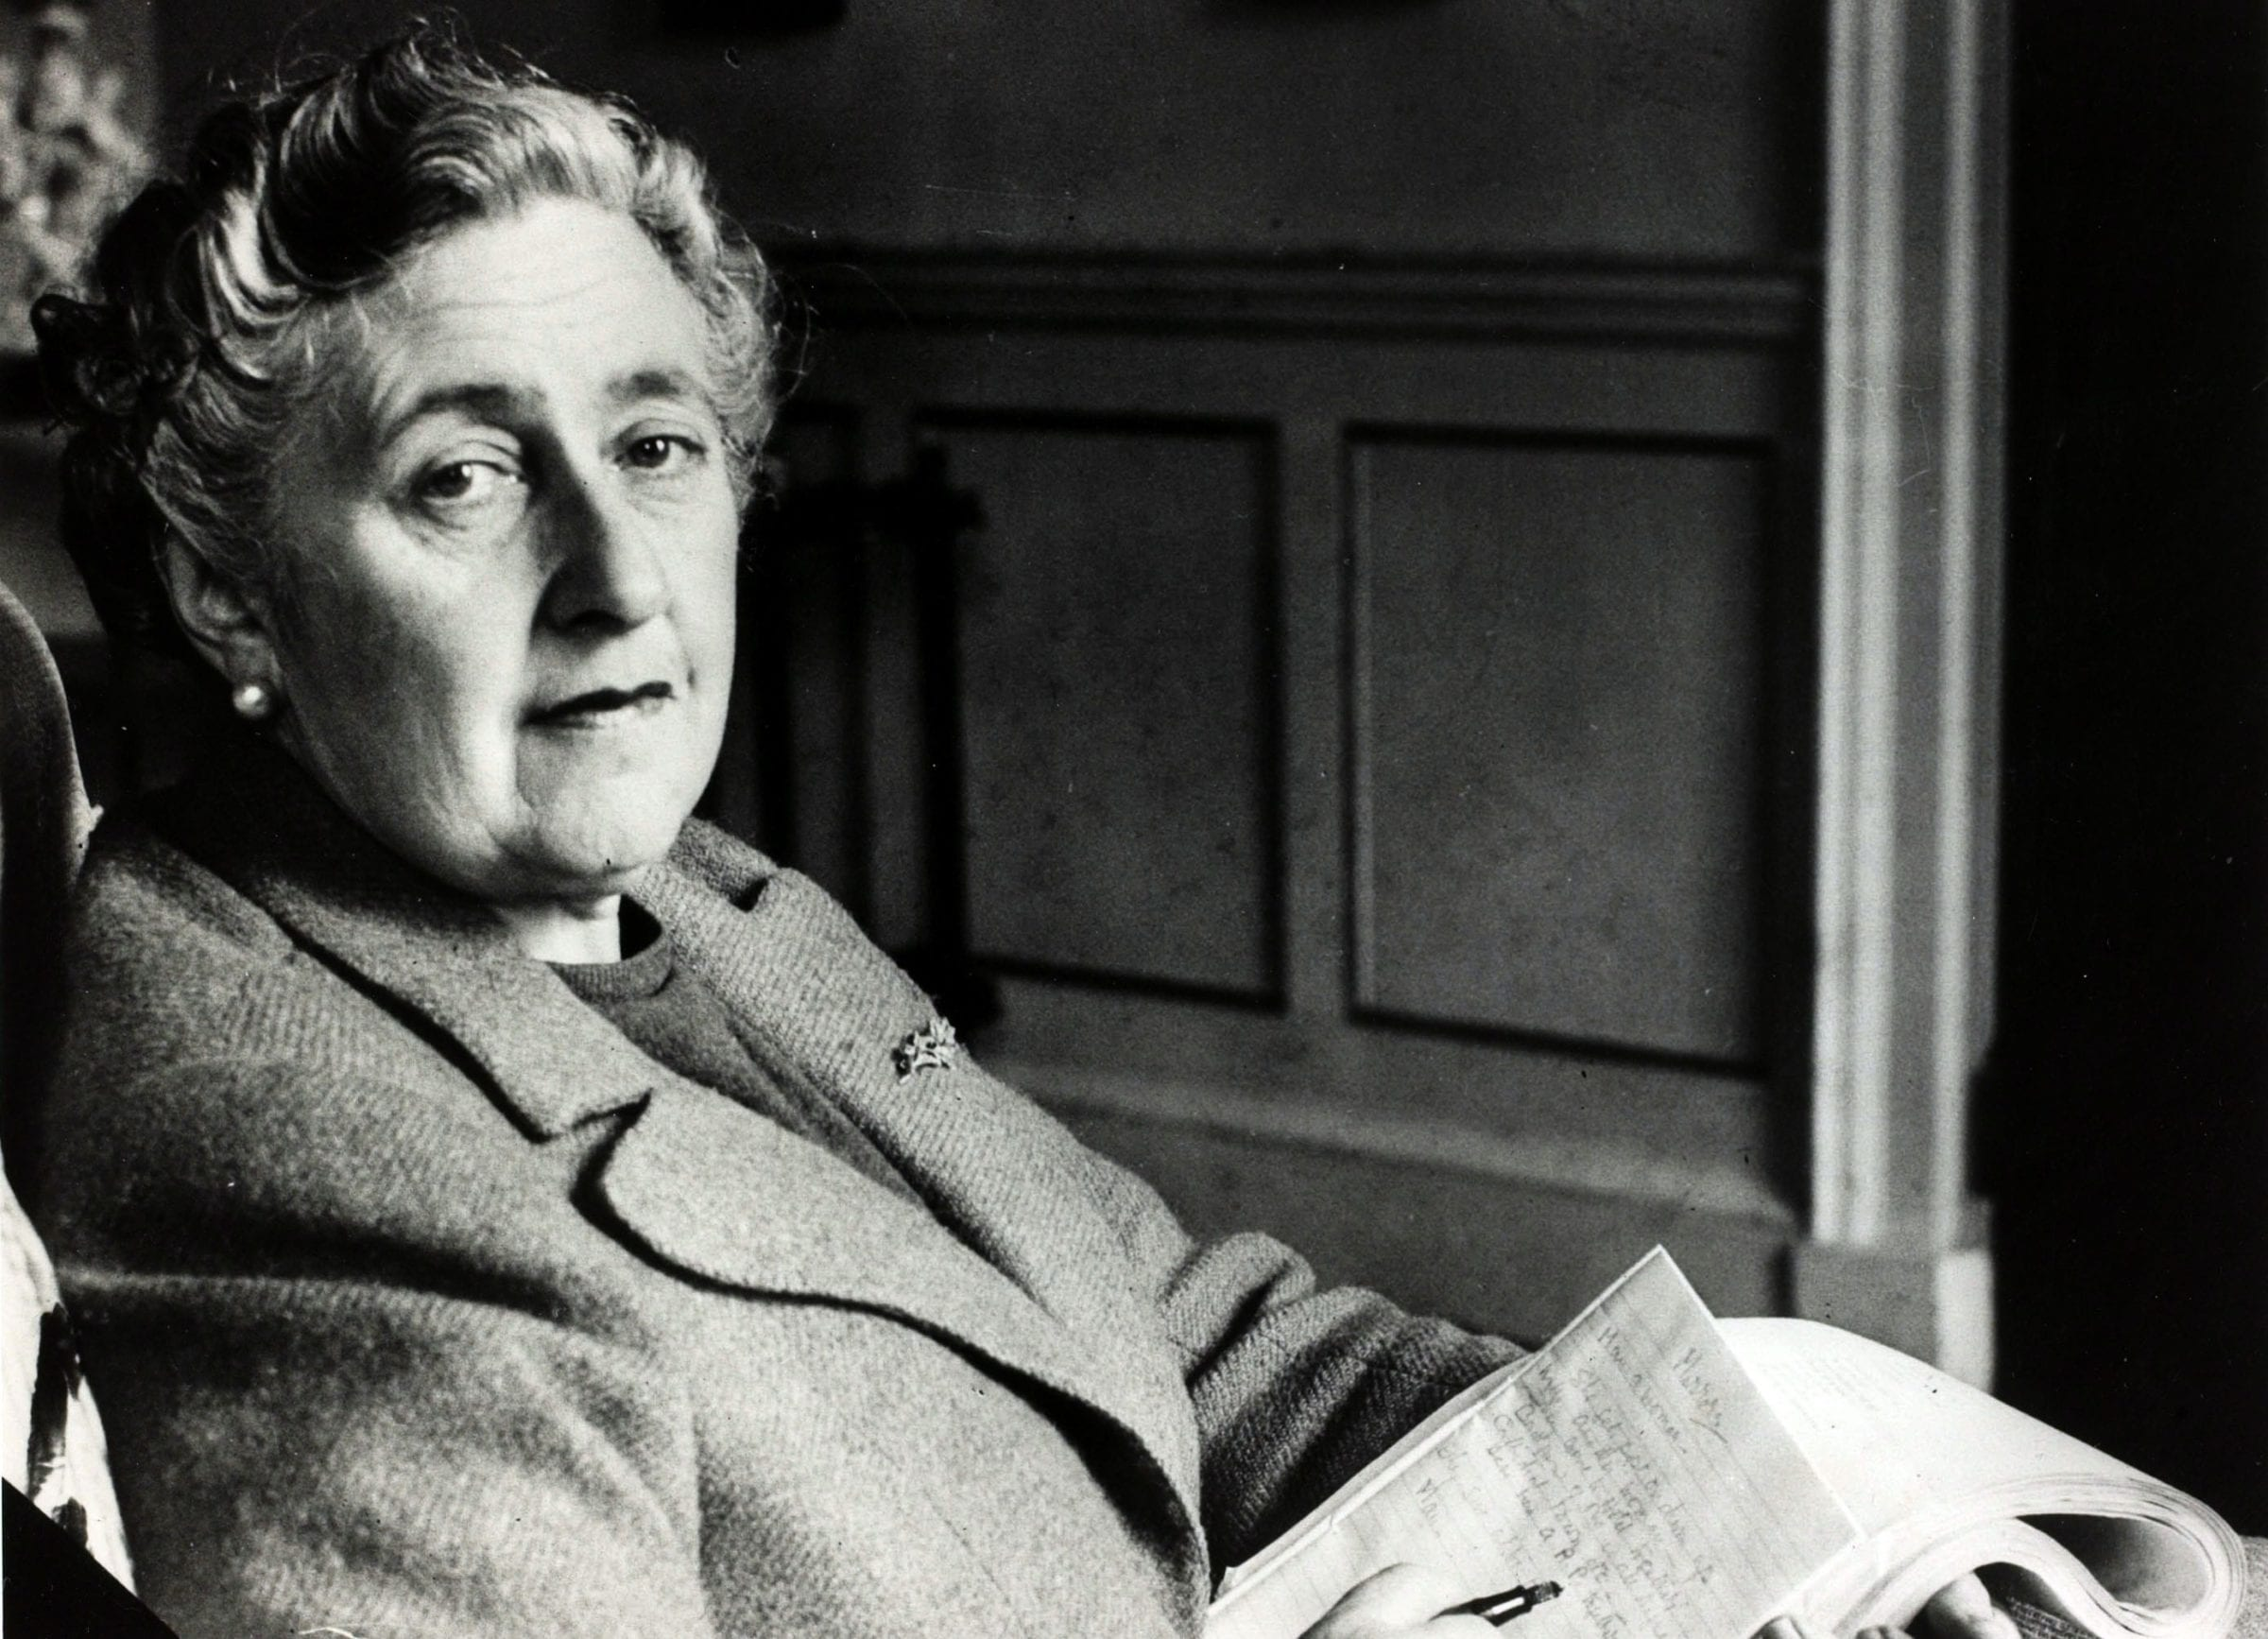 Amazon has signed a multi-year deal with Agatha Christie Limited for rights to seven new adaptations, starting with 'Ordeal by Innocence'.